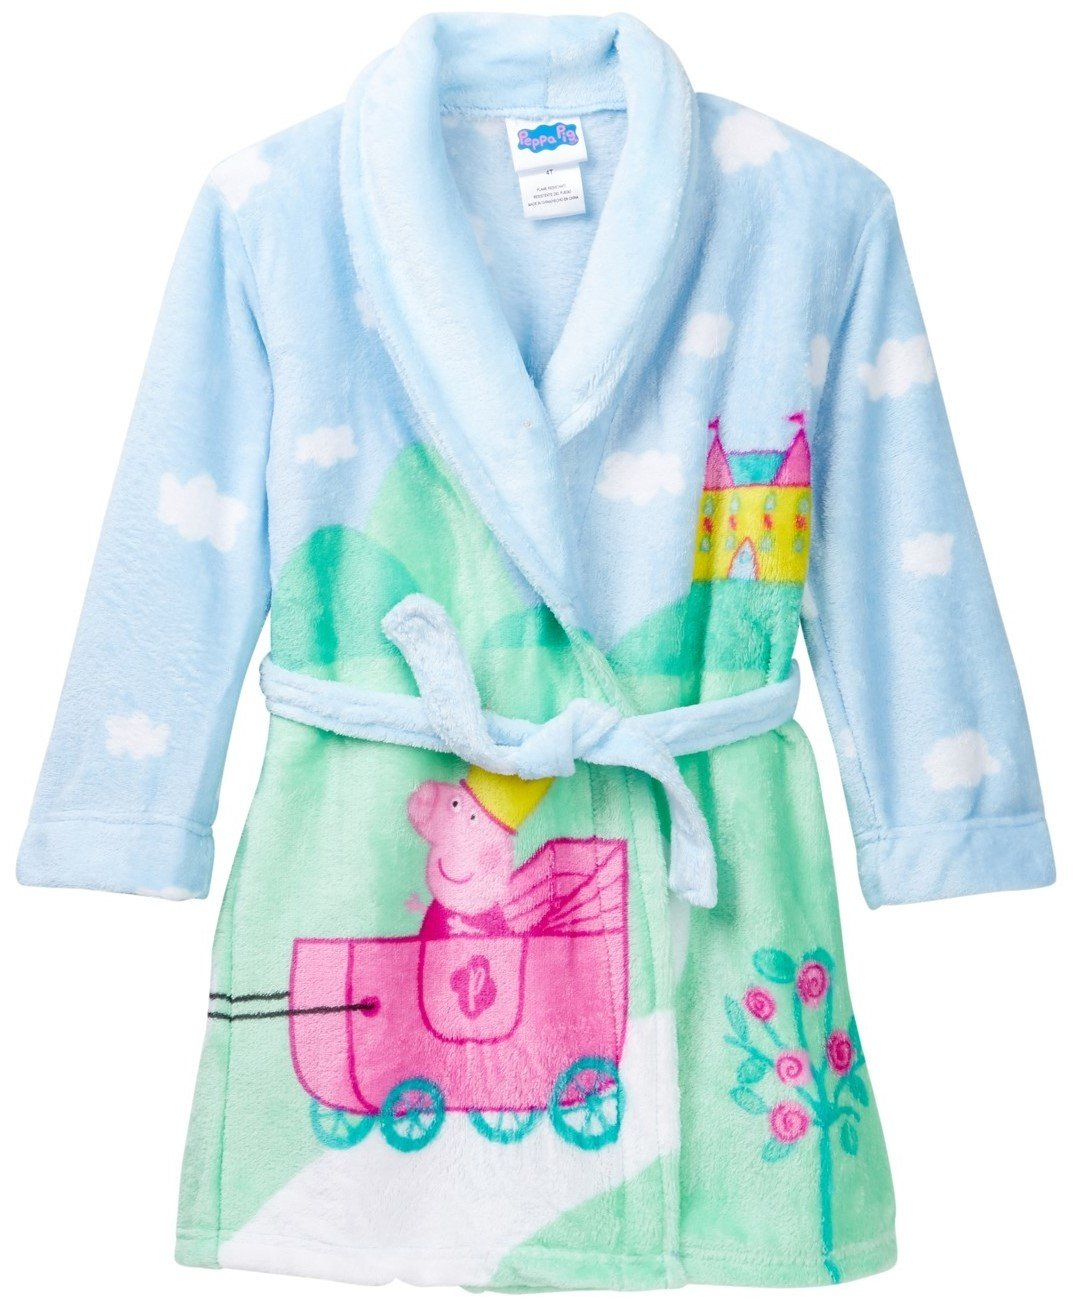 Peppa Pig Kids Panoramic Plush Robe with attached belt, Toddlers Size 2T